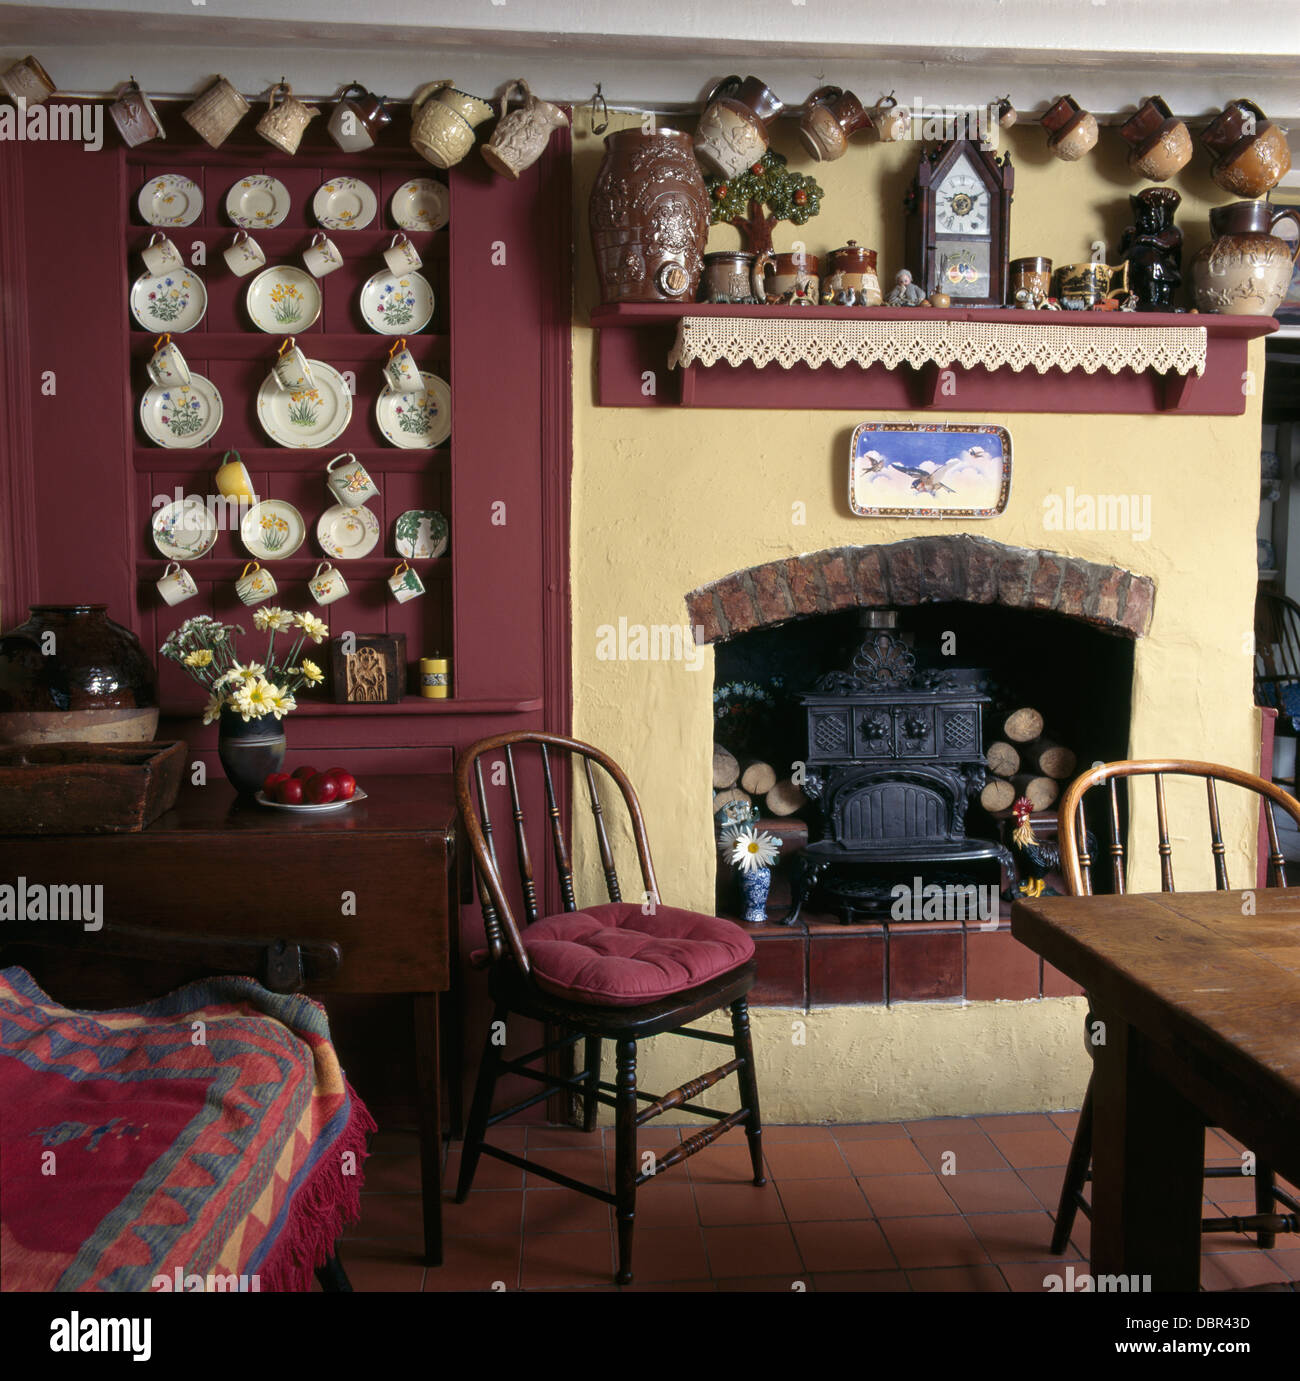 Collection of earthenware jugs and china plates on walls of dark ...